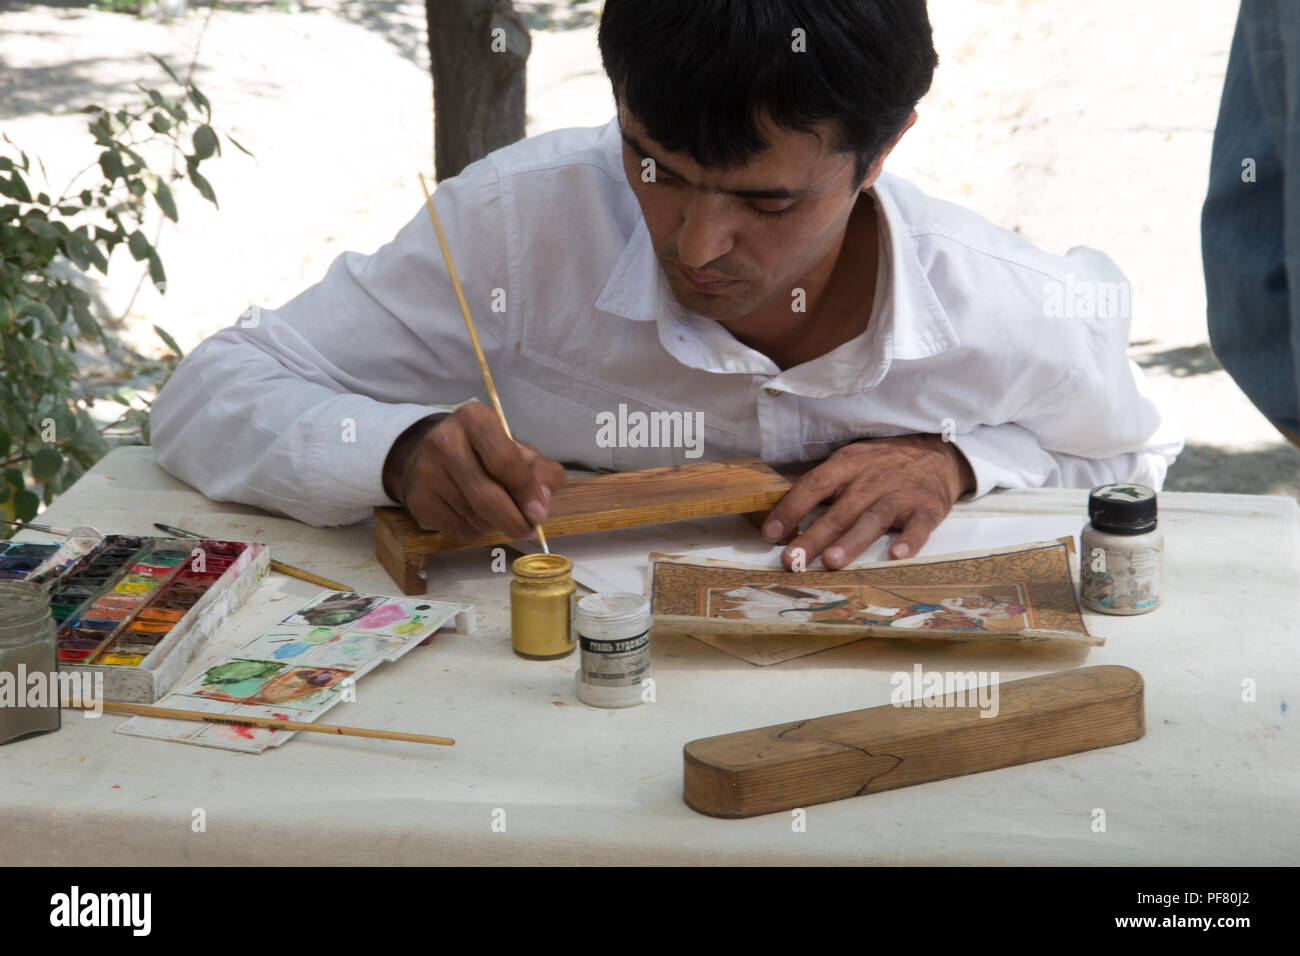 An Uzbek man painting crafts in Uzbekistan, Silk Road, Central Asia Stock Photo